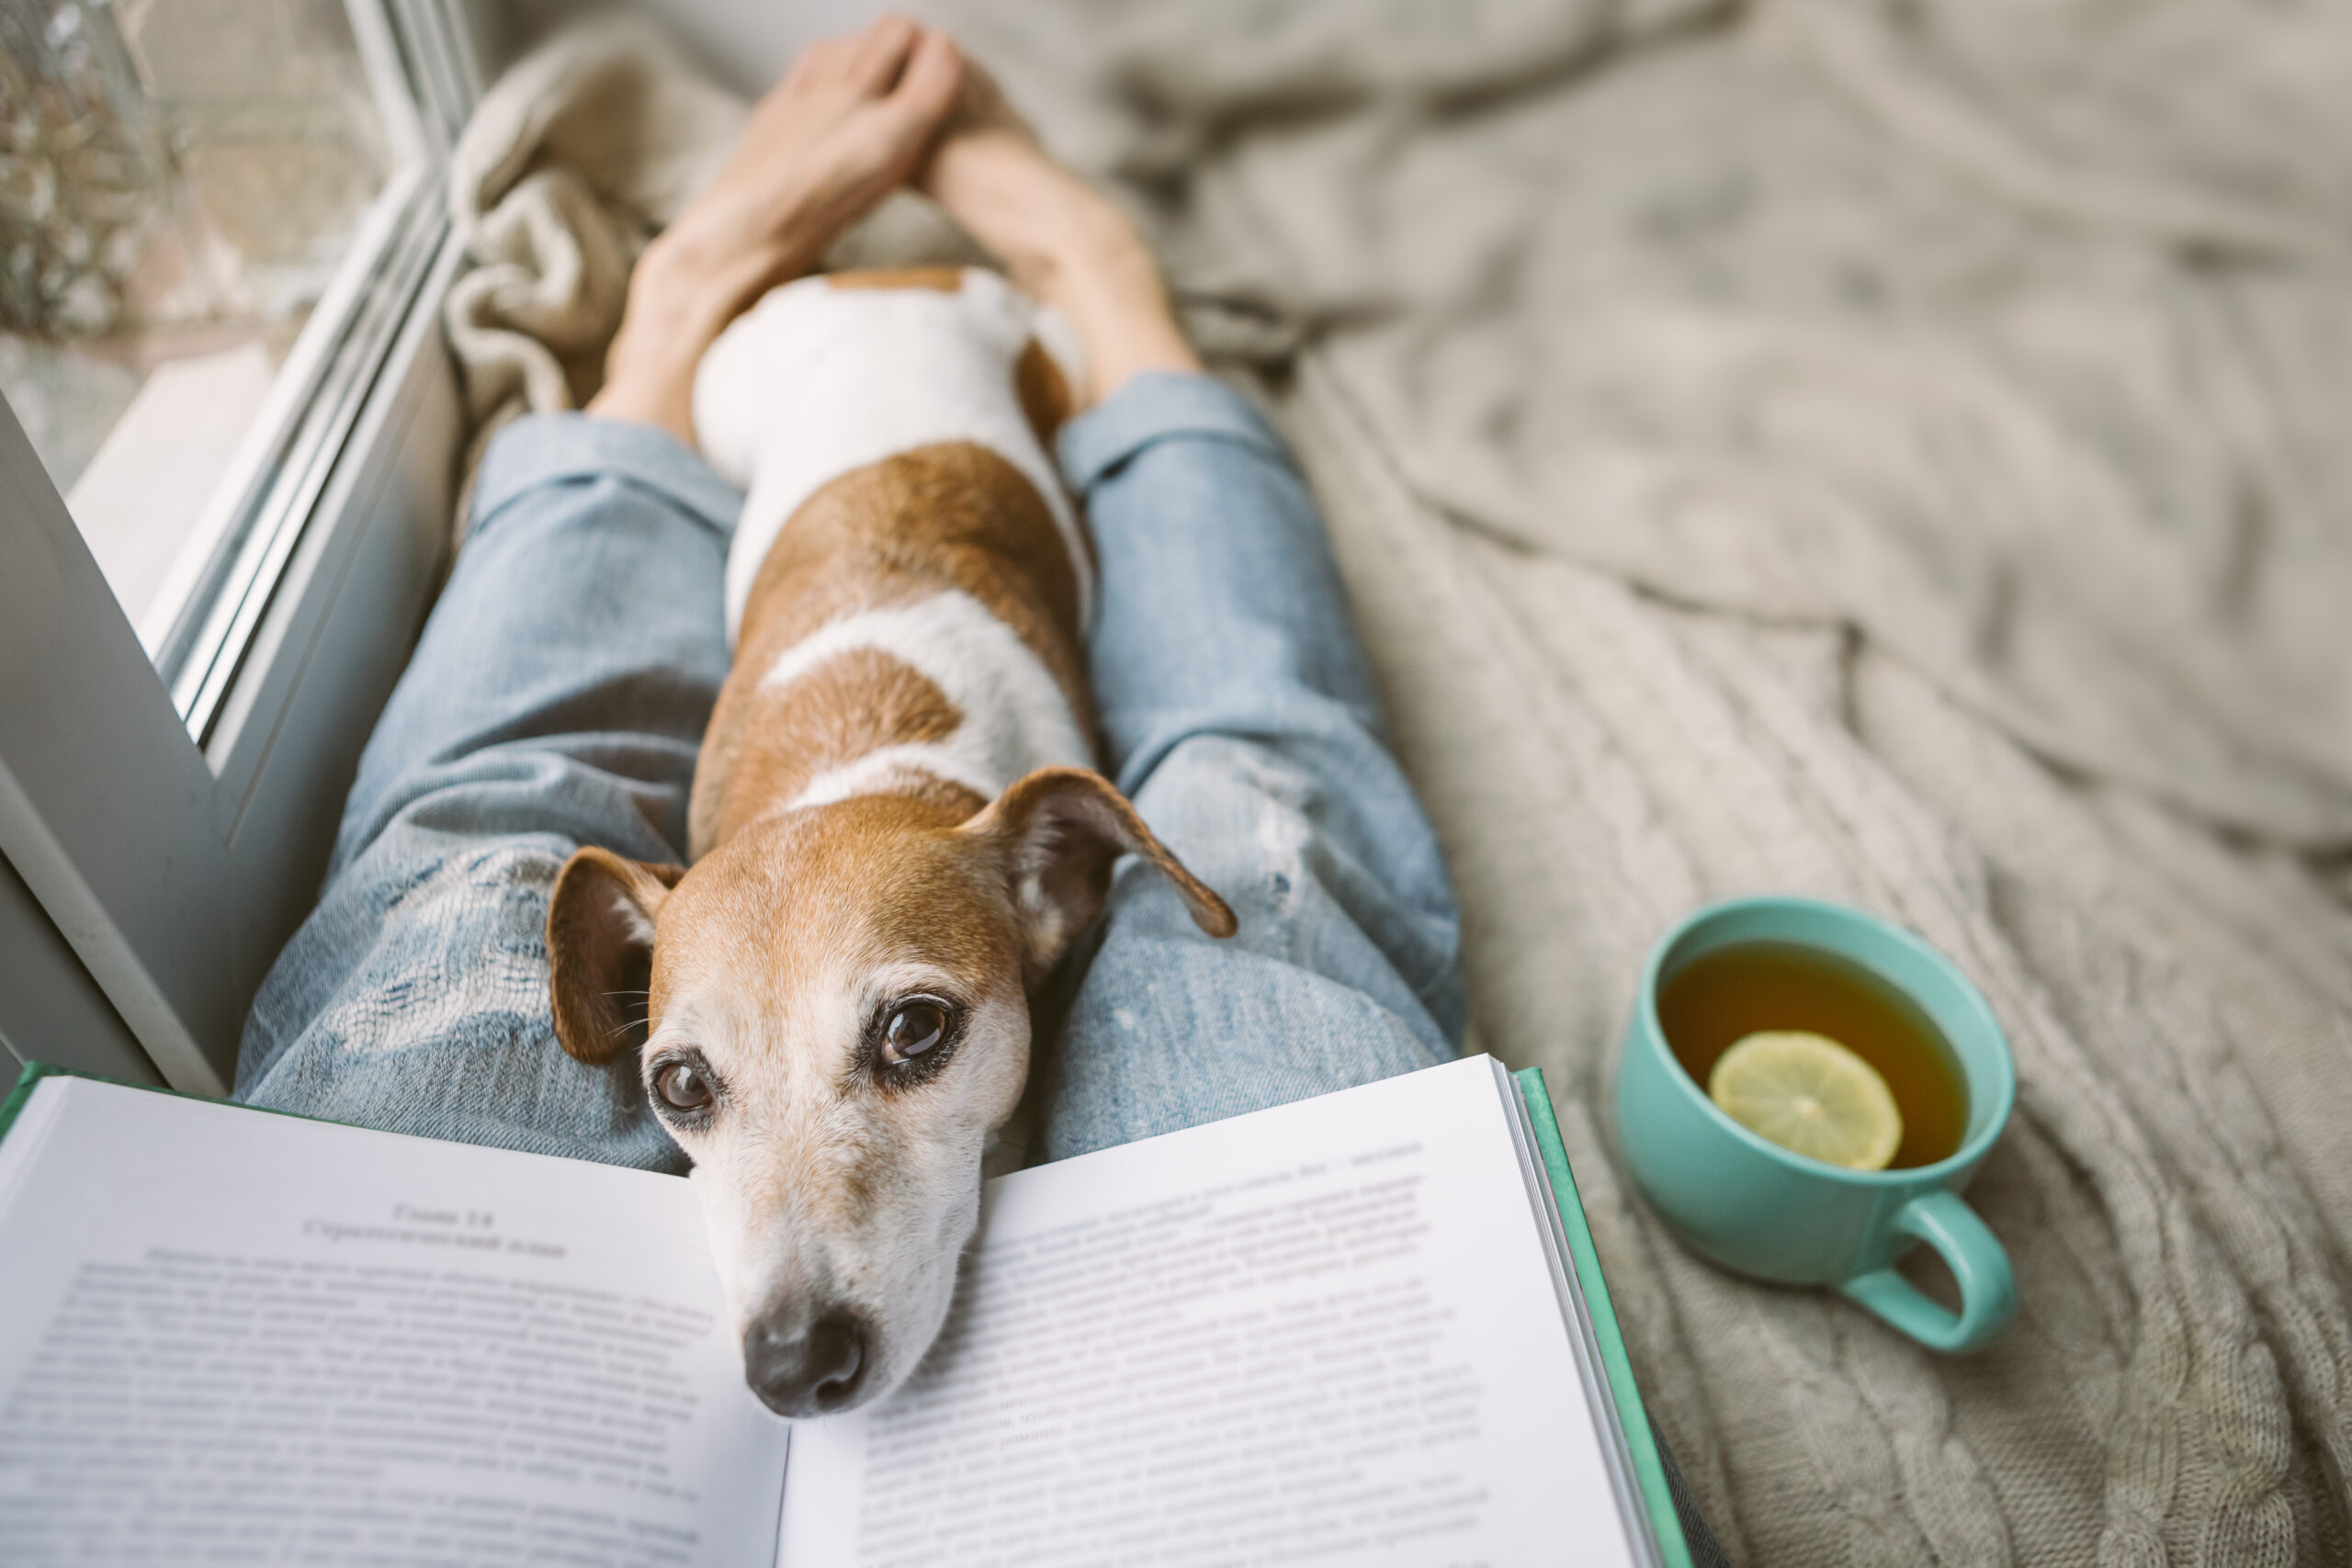 Reading at home with pet Jack Russell terrier. Cozy home weekend with interesting book, dog and hot tea. Beige and blue. Chilling mood